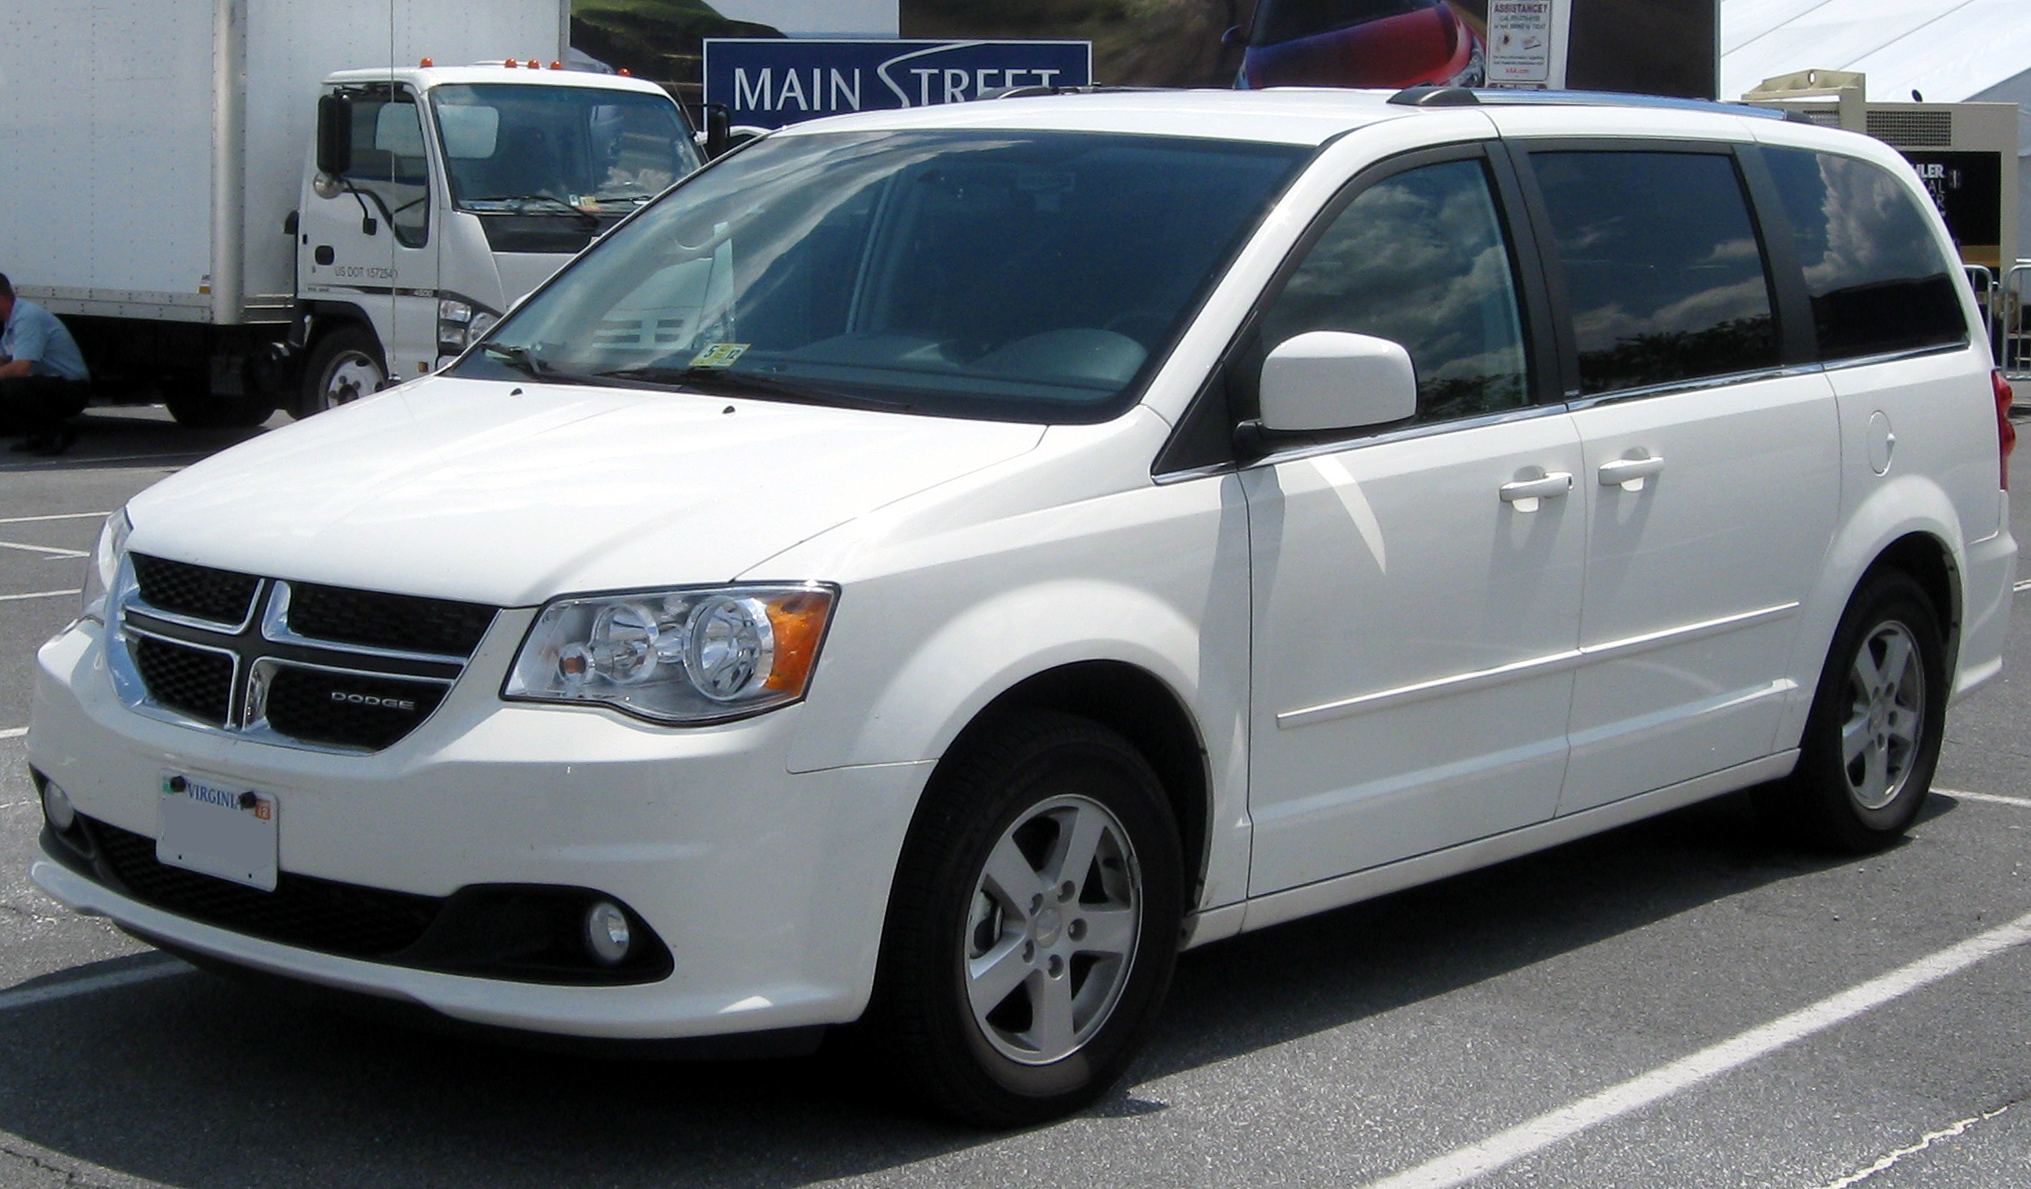 Rent a Dodge Caravan or similar model for $40 a day (Photo via Google)